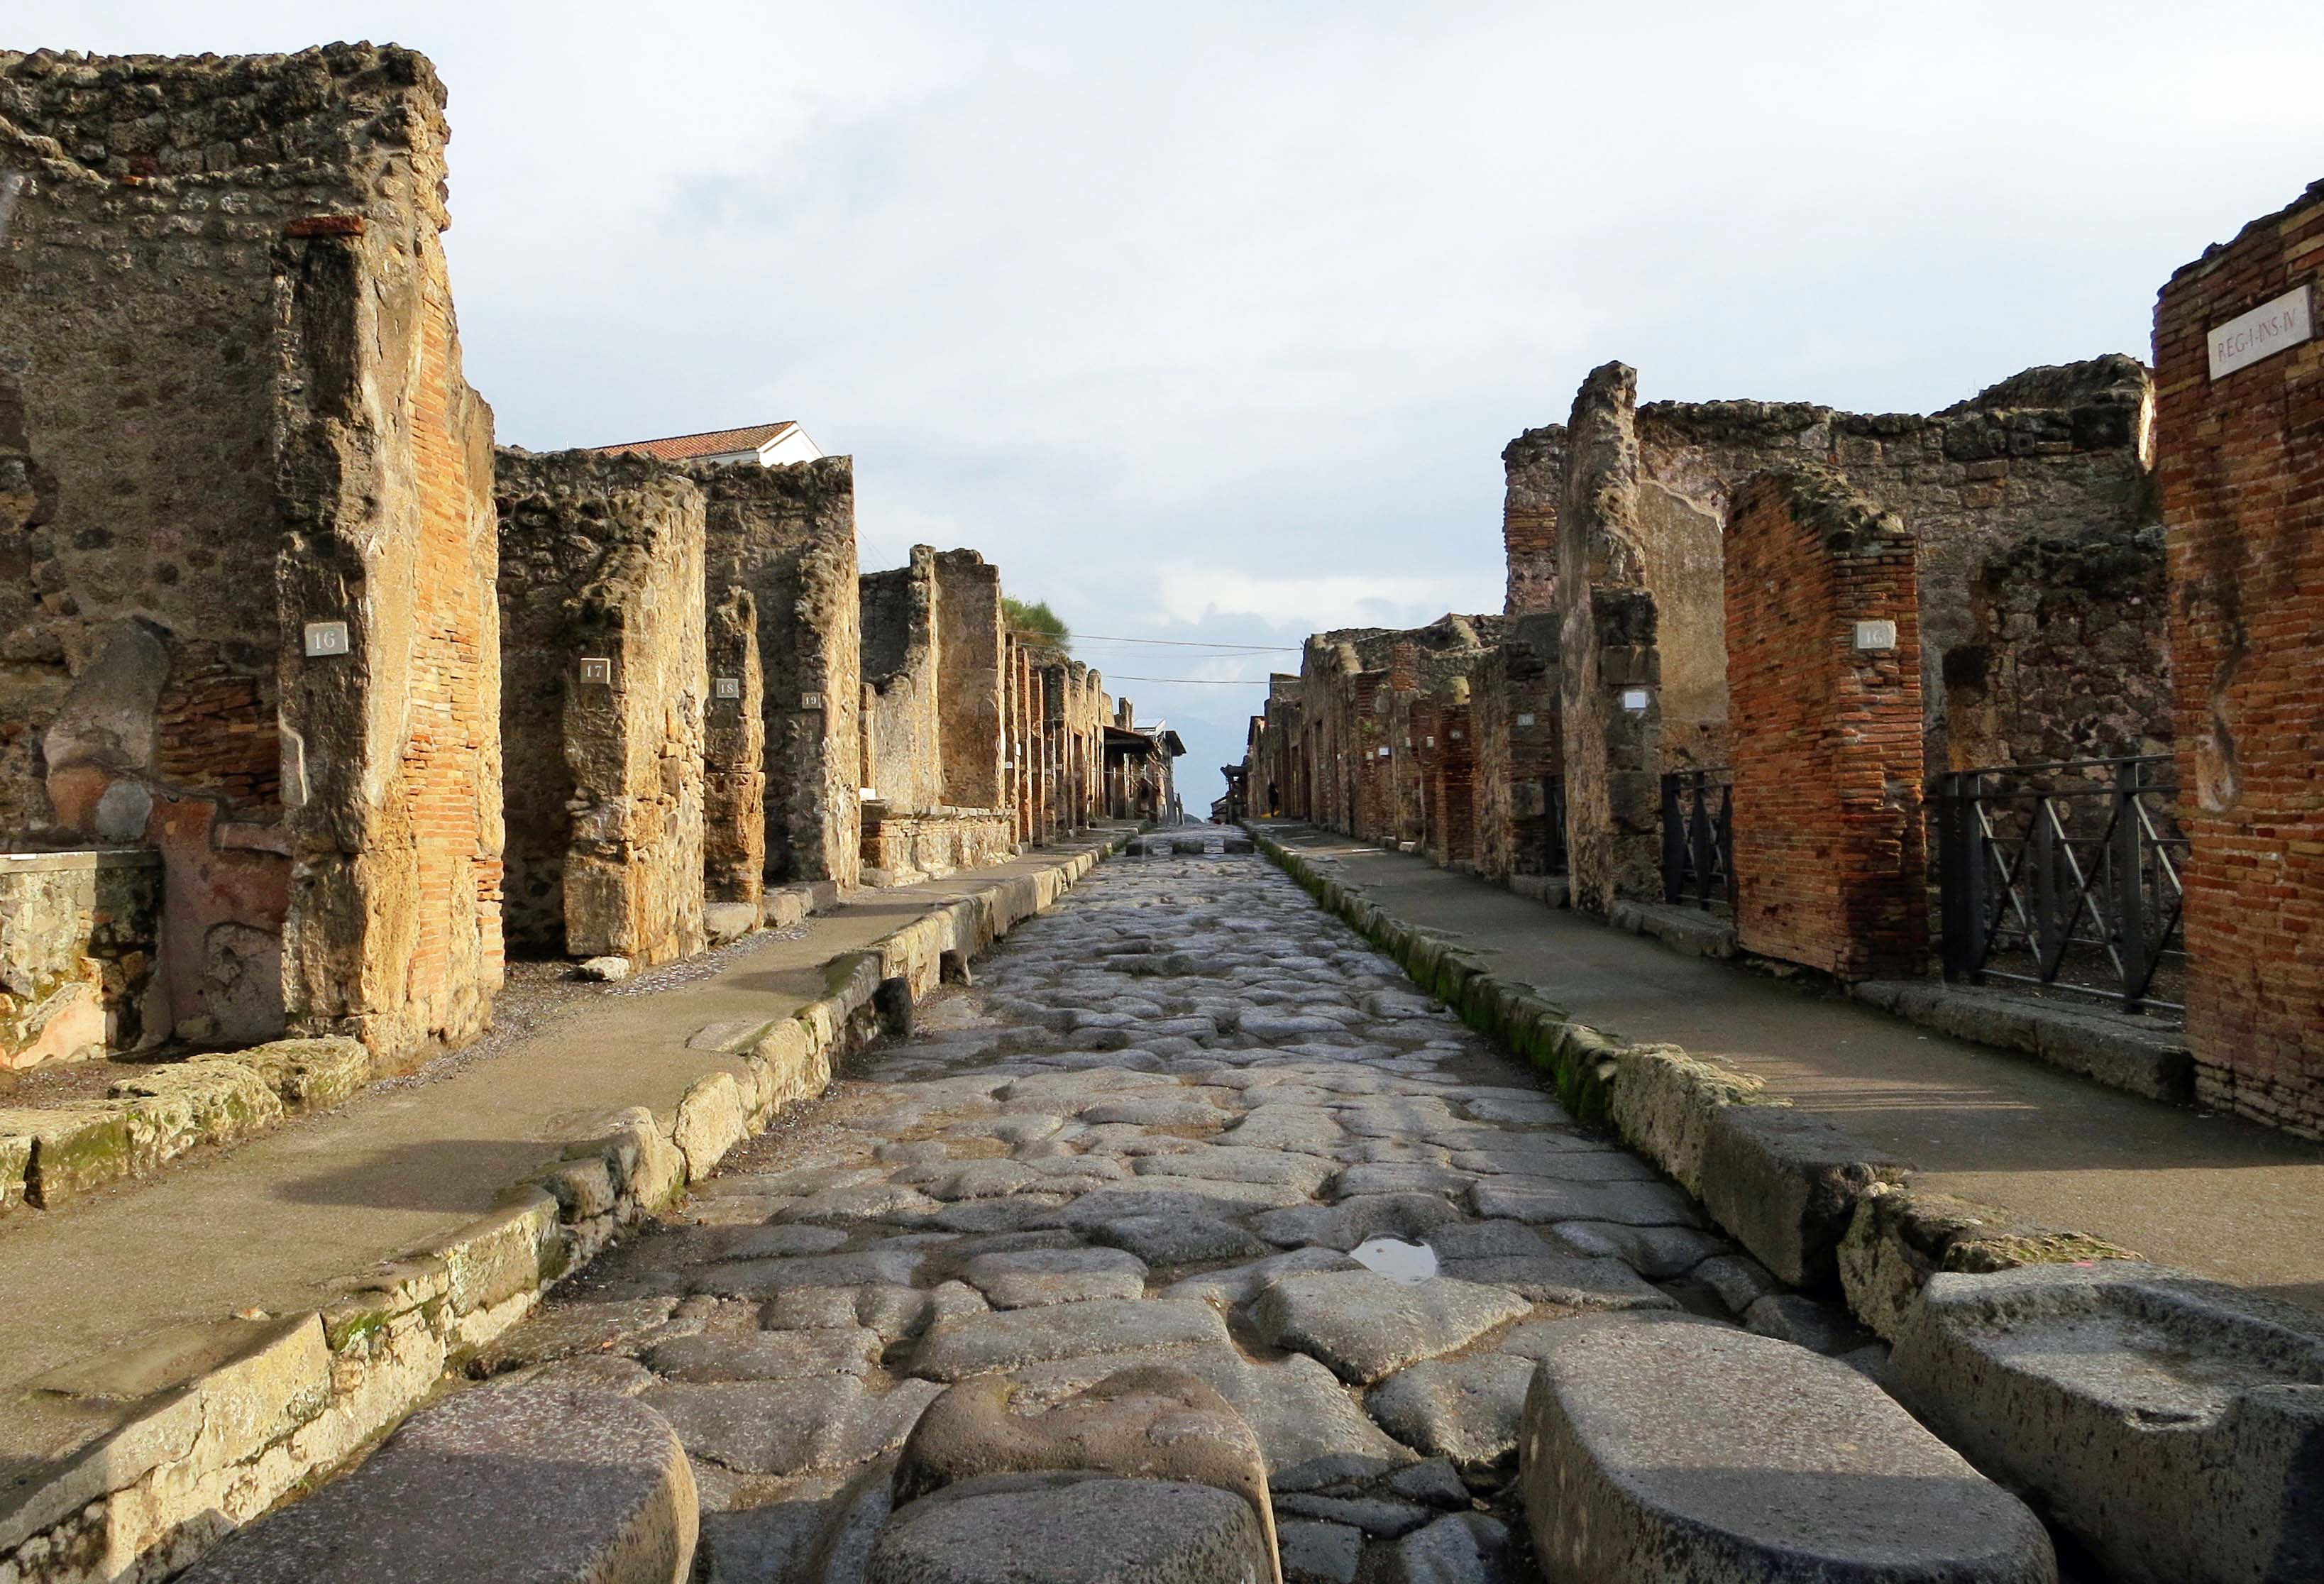 Pompeii street with raised crossing